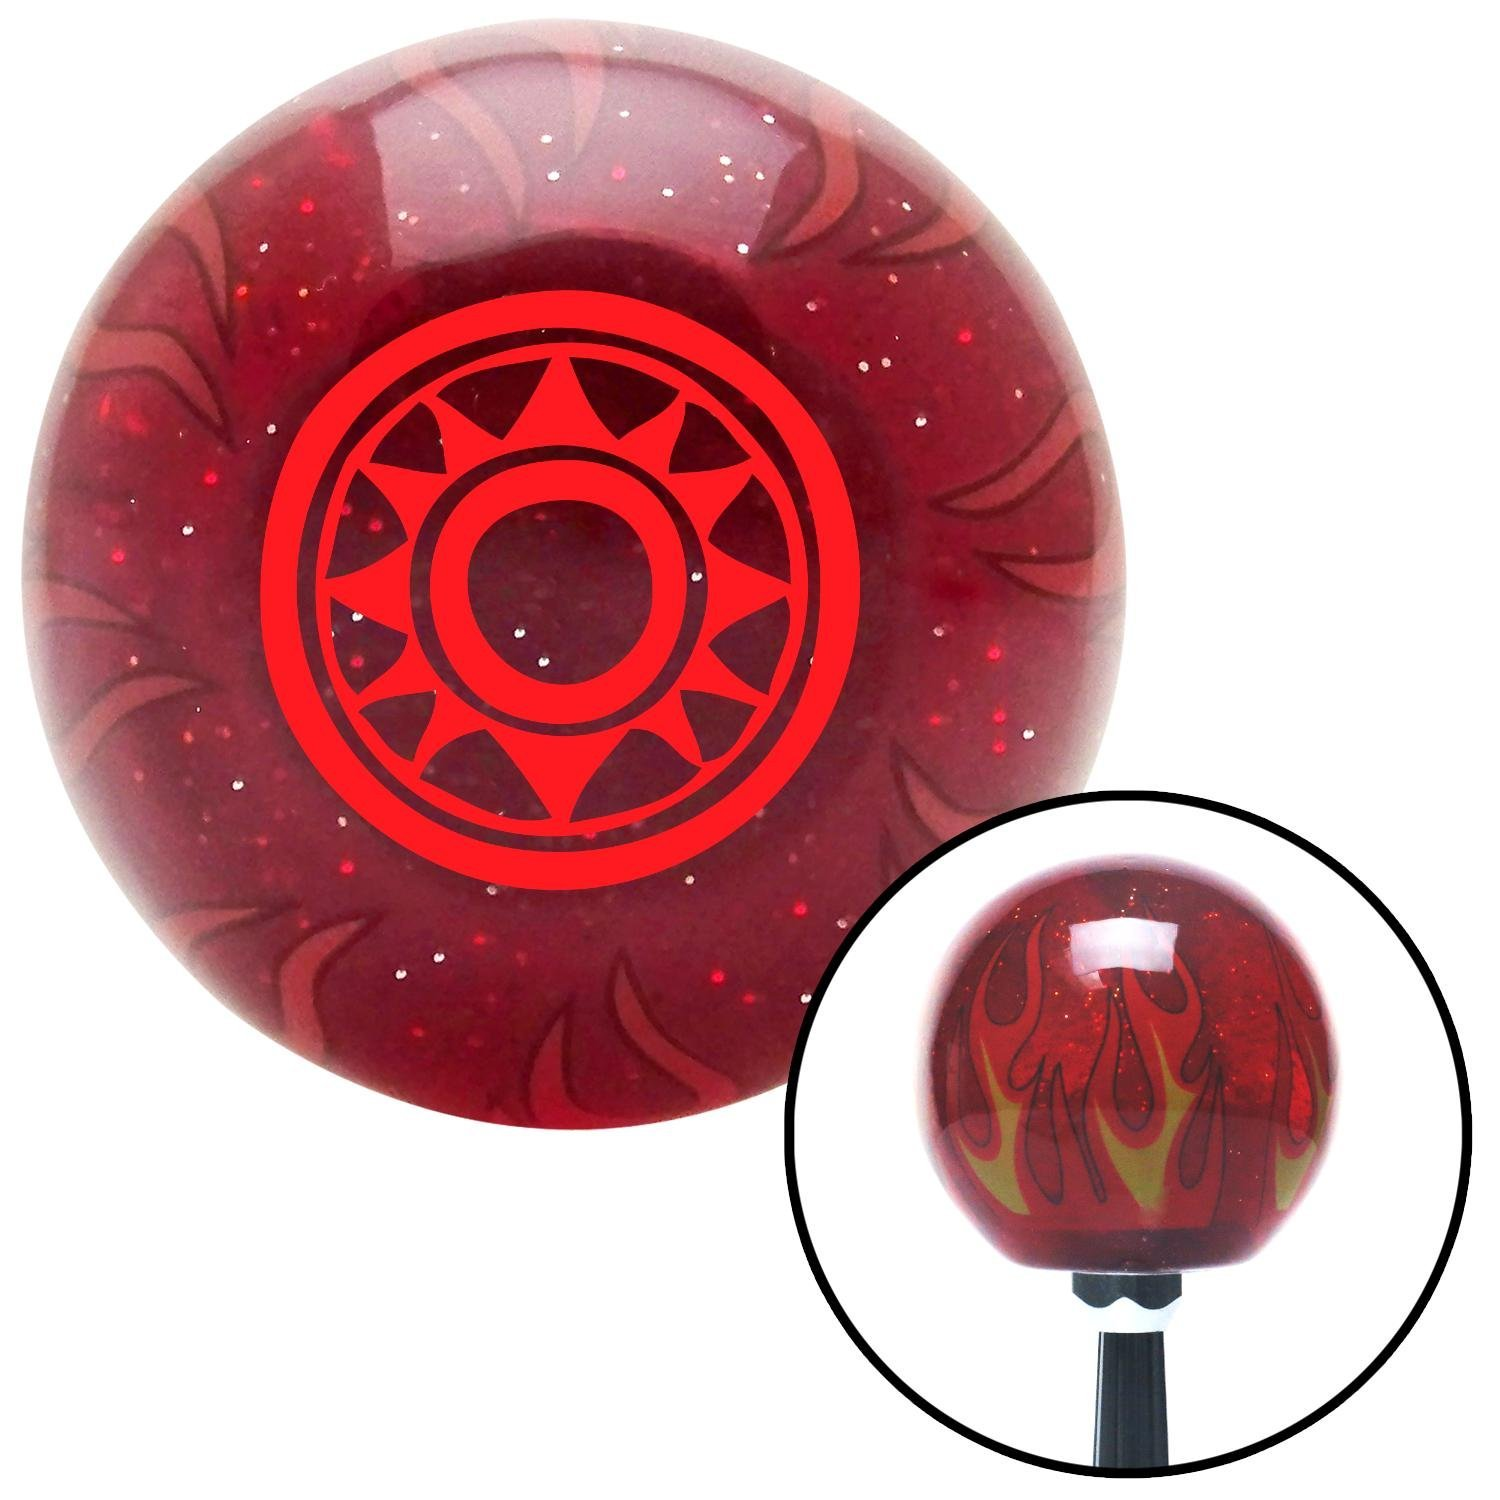 Red Hawaiian Sun #2 American Shifter 240869 Red Flame Metal Flake Shift Knob with M16 x 1.5 Insert